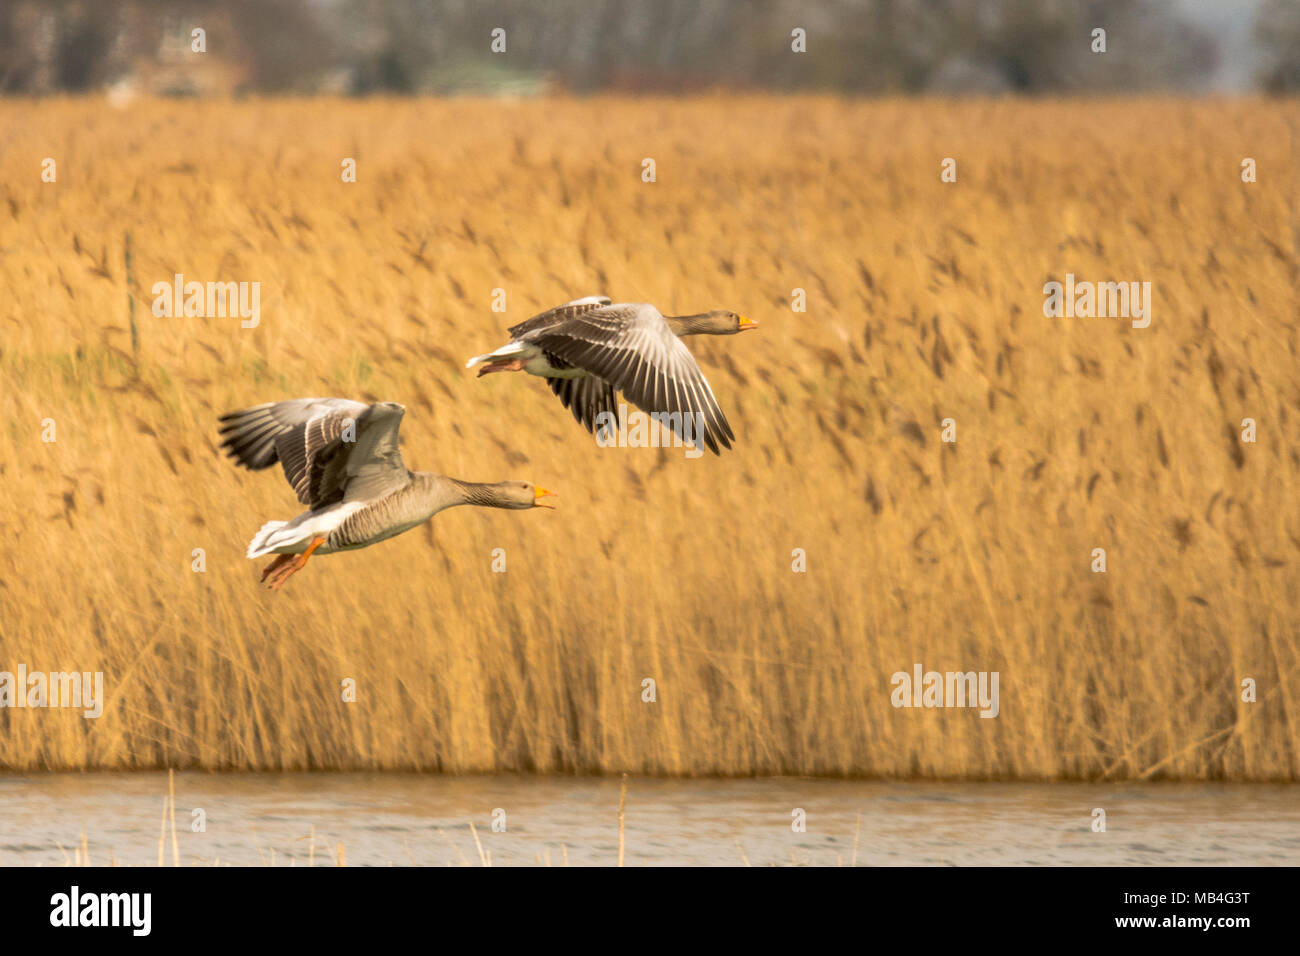 RSPB Blacktoft Sands  6th April 2018: Grey cold for waders, warblers and raptors at Englands largest intertidal reedbed, home to marsh harriers high water's along shipping route of the  River Ouse as konik ponies keep the marsh in good condition by grazing. Clifford Norton Alamy Live News. - Stock Image